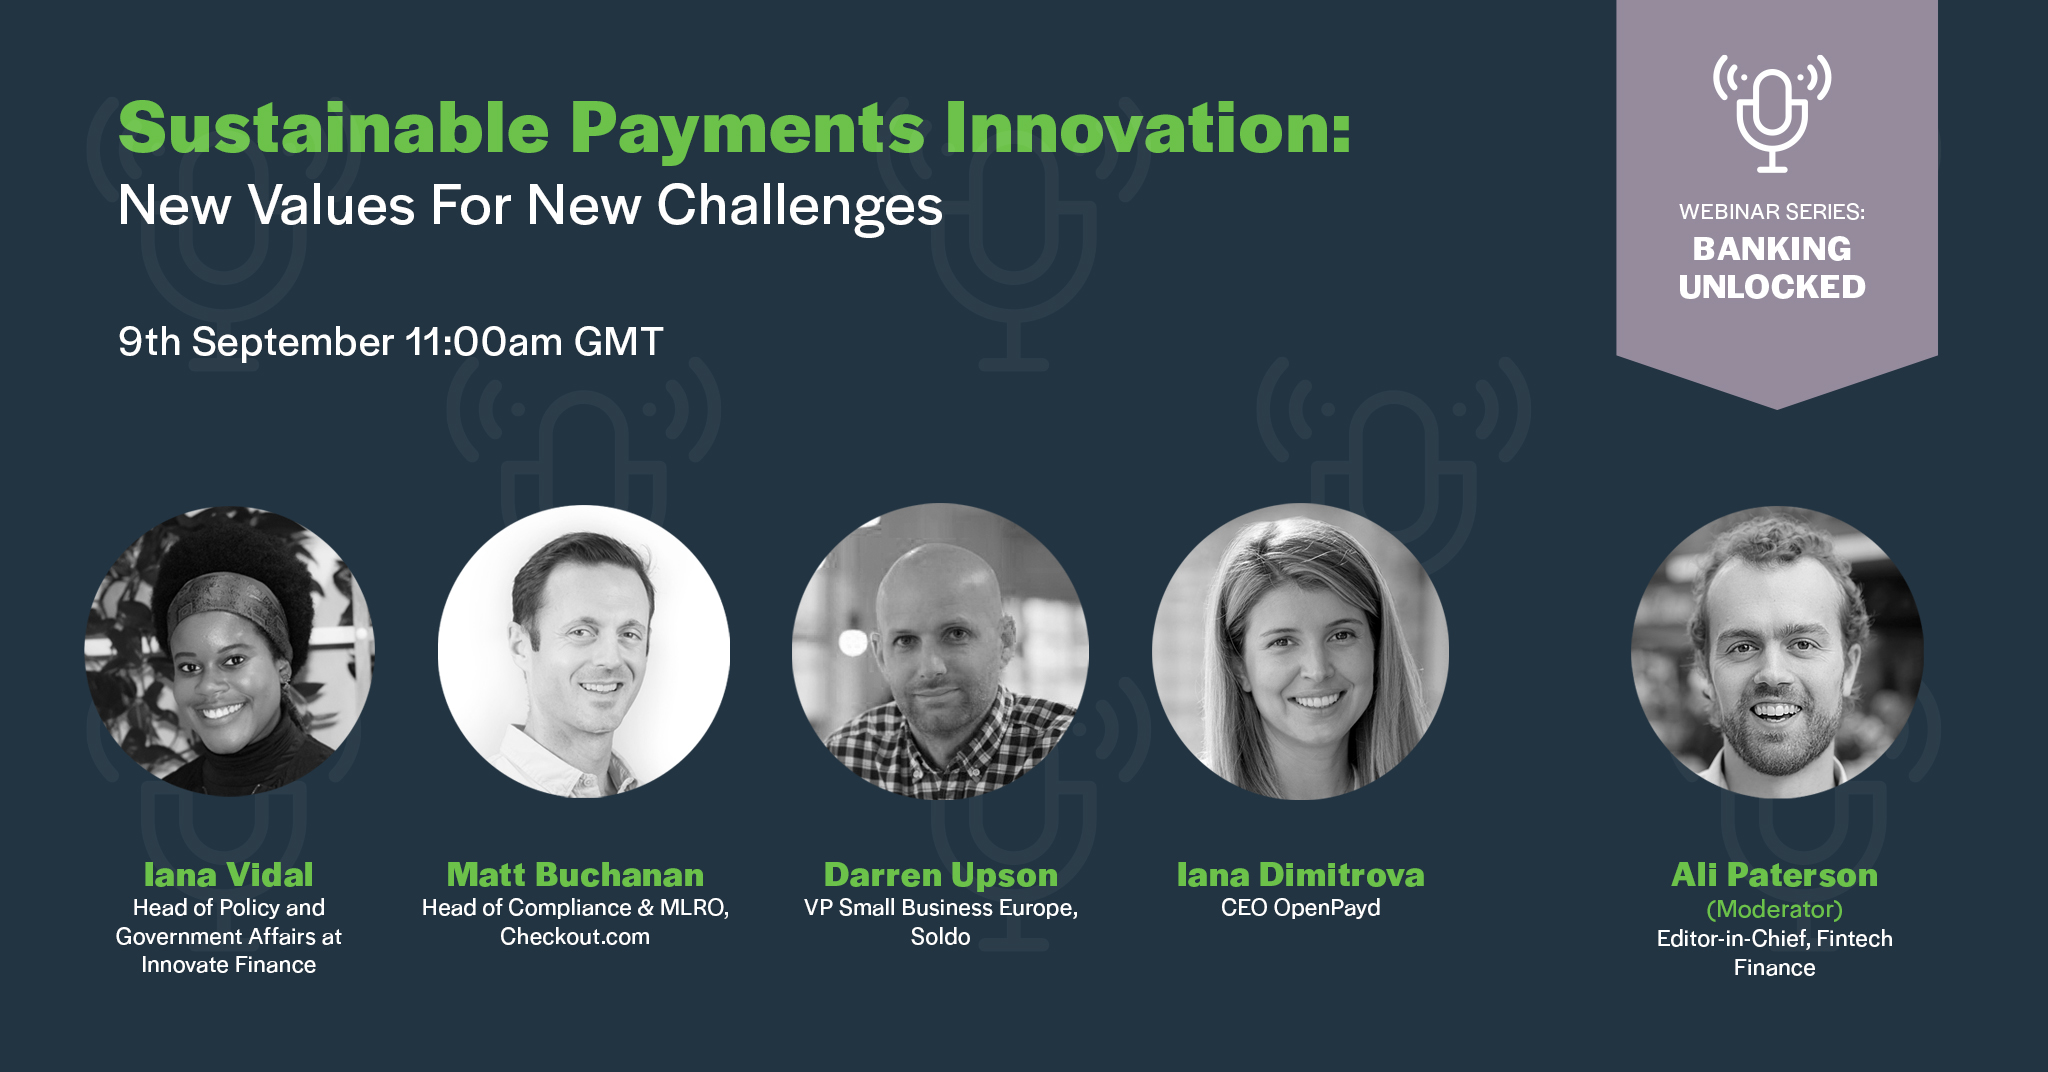 Sustainable Payments Innovation: New Values For New Challenges